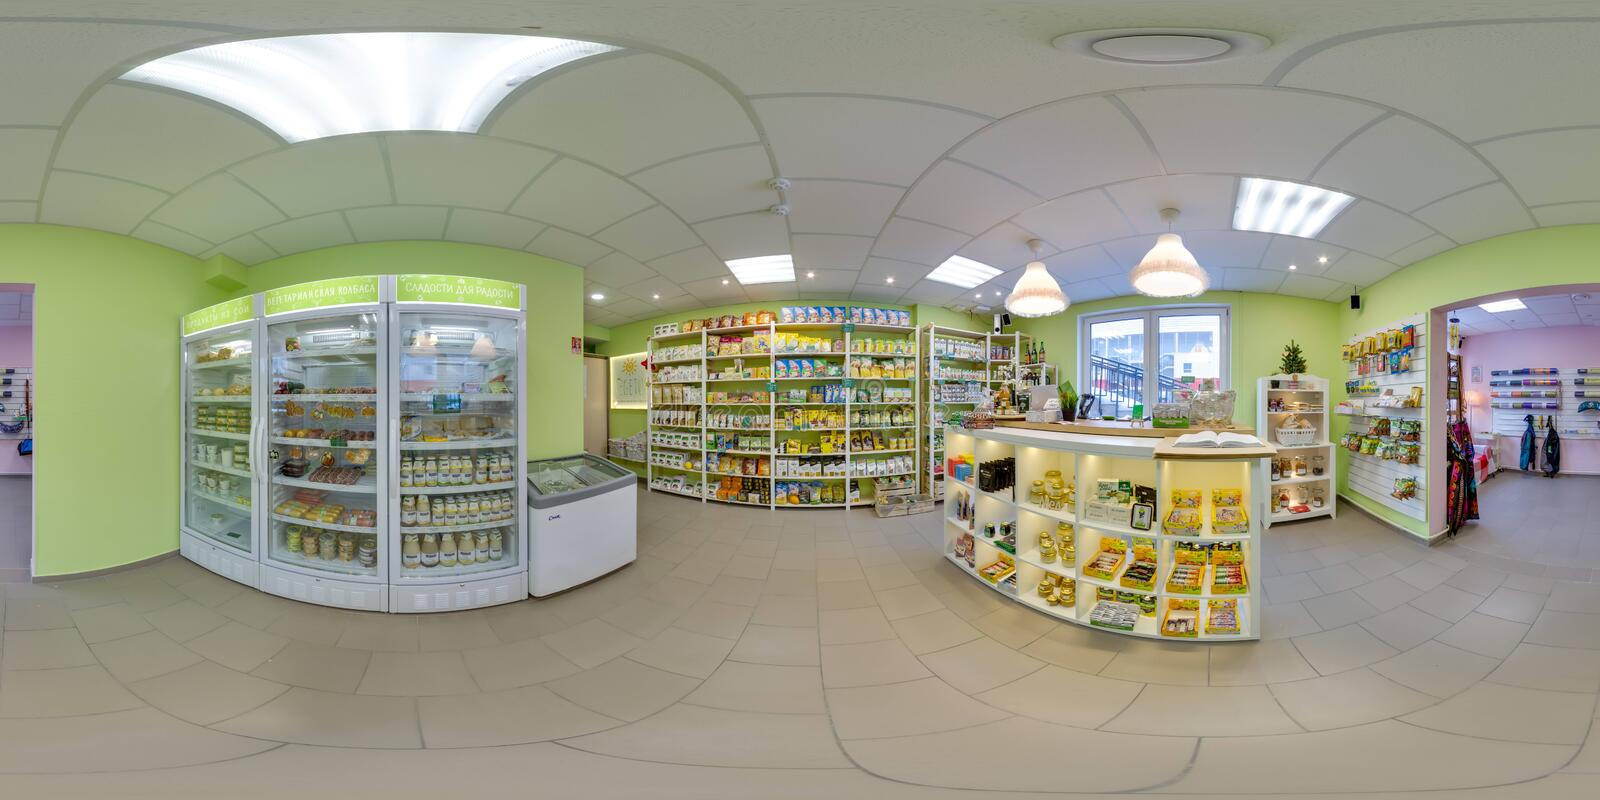 Interior of eco-store with food and fridges. 3D spherical panorama with 360 degree viewing angle. Ready for virtual reality in vr. Interior of eco-store with stock images